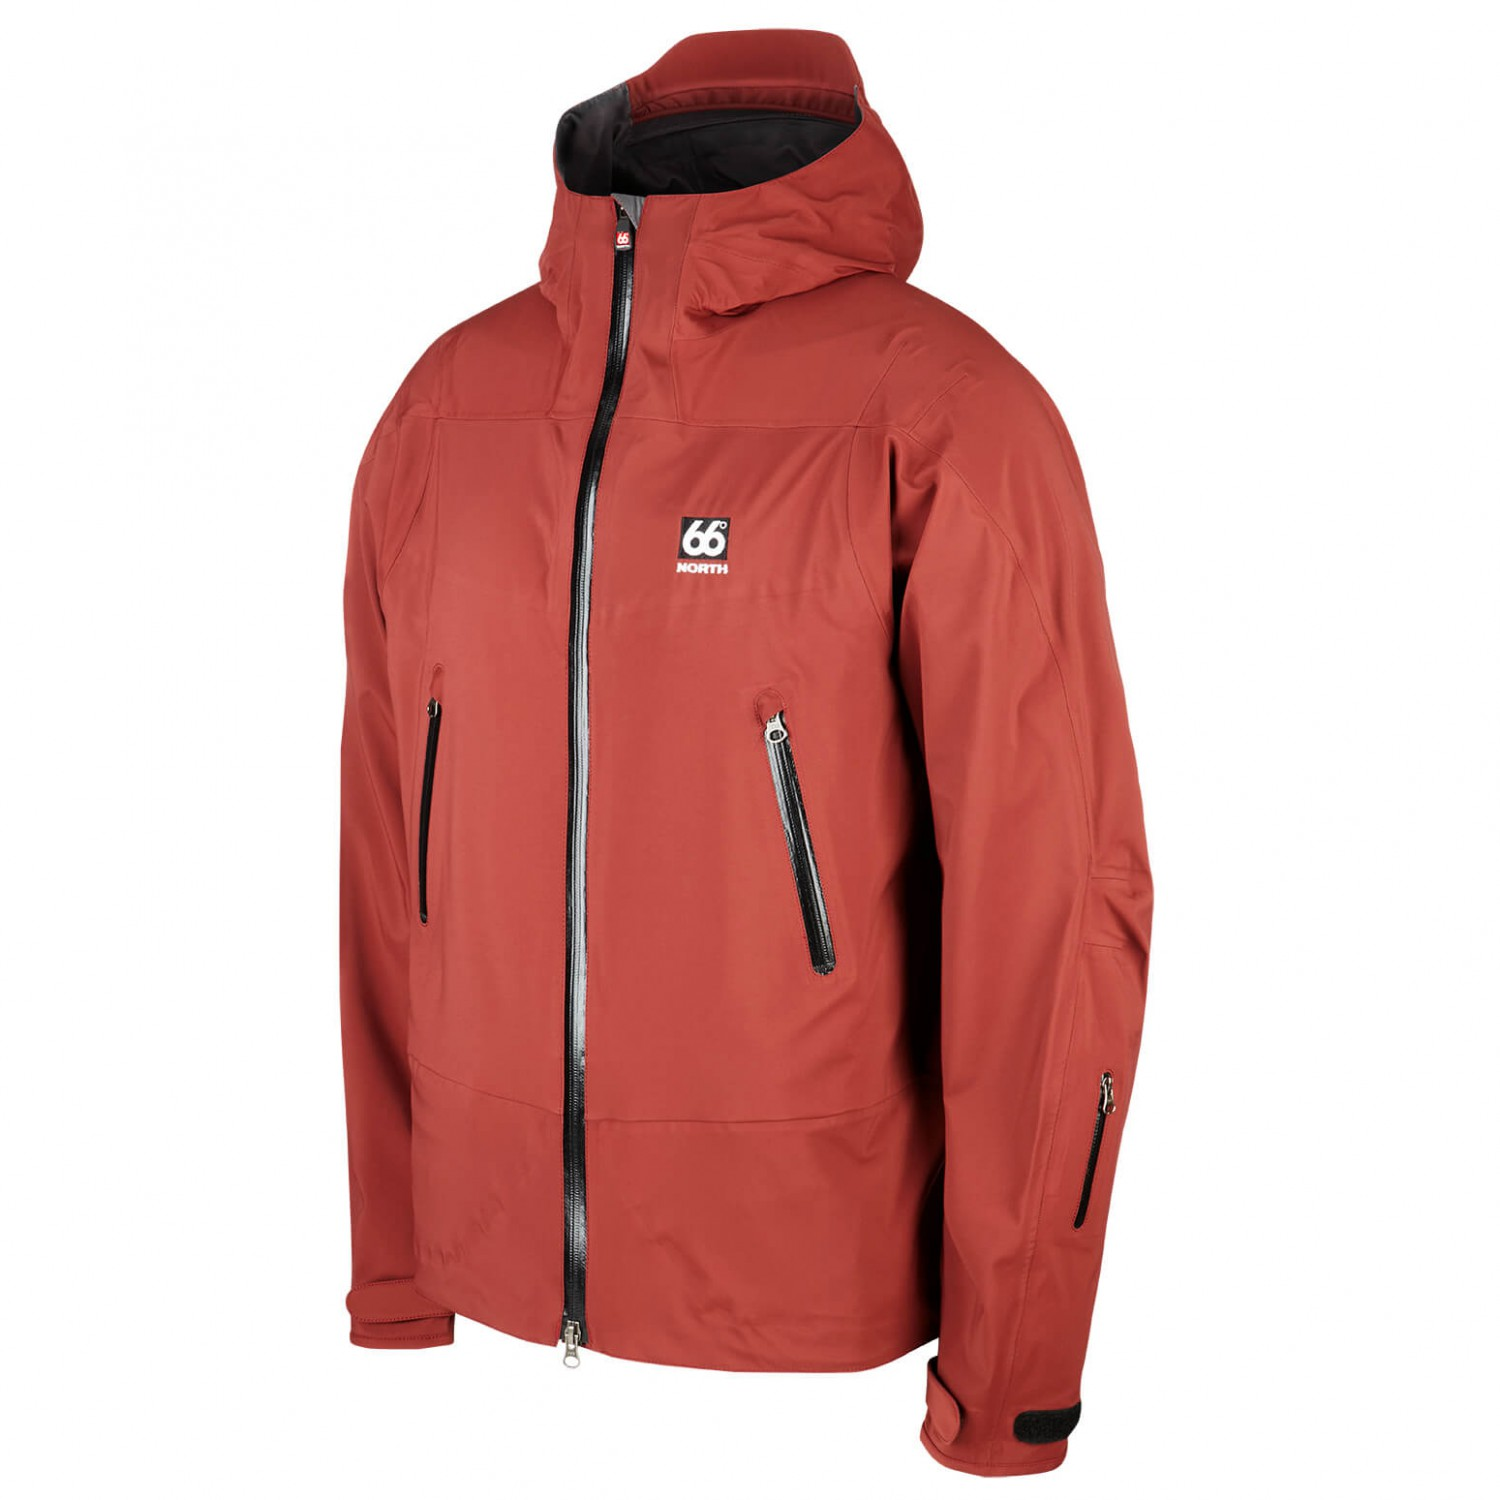 66 North Snæfell Jacket Chaqueta impermeable Hombre